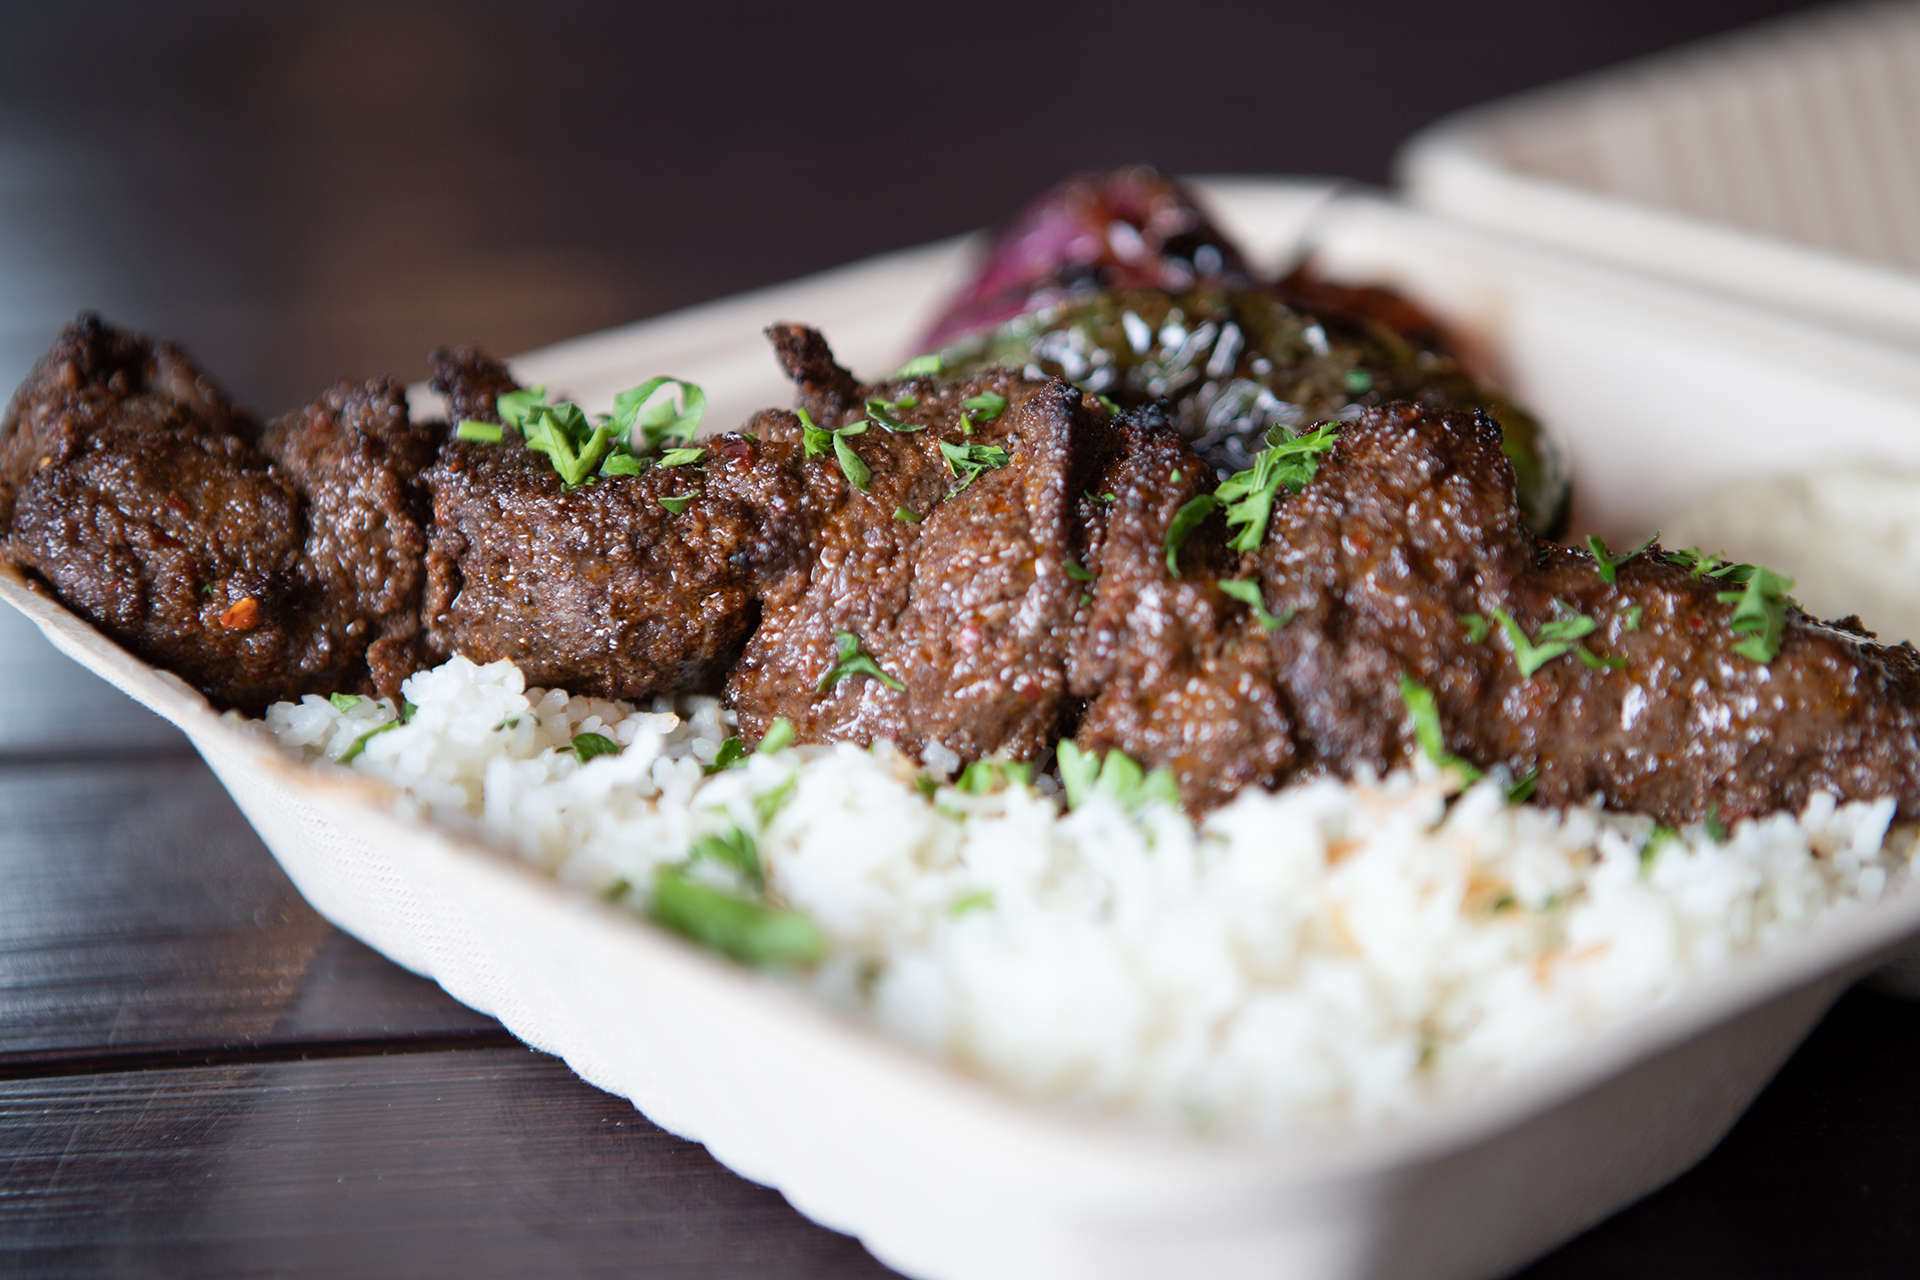 A Filet Mignon platter is pictured on a black metalic table. The Fillet Mignon platter is served on a bed or rice, with Garlic Paste, and grilled vegetable sides. The plate is topped with parsley garnish.